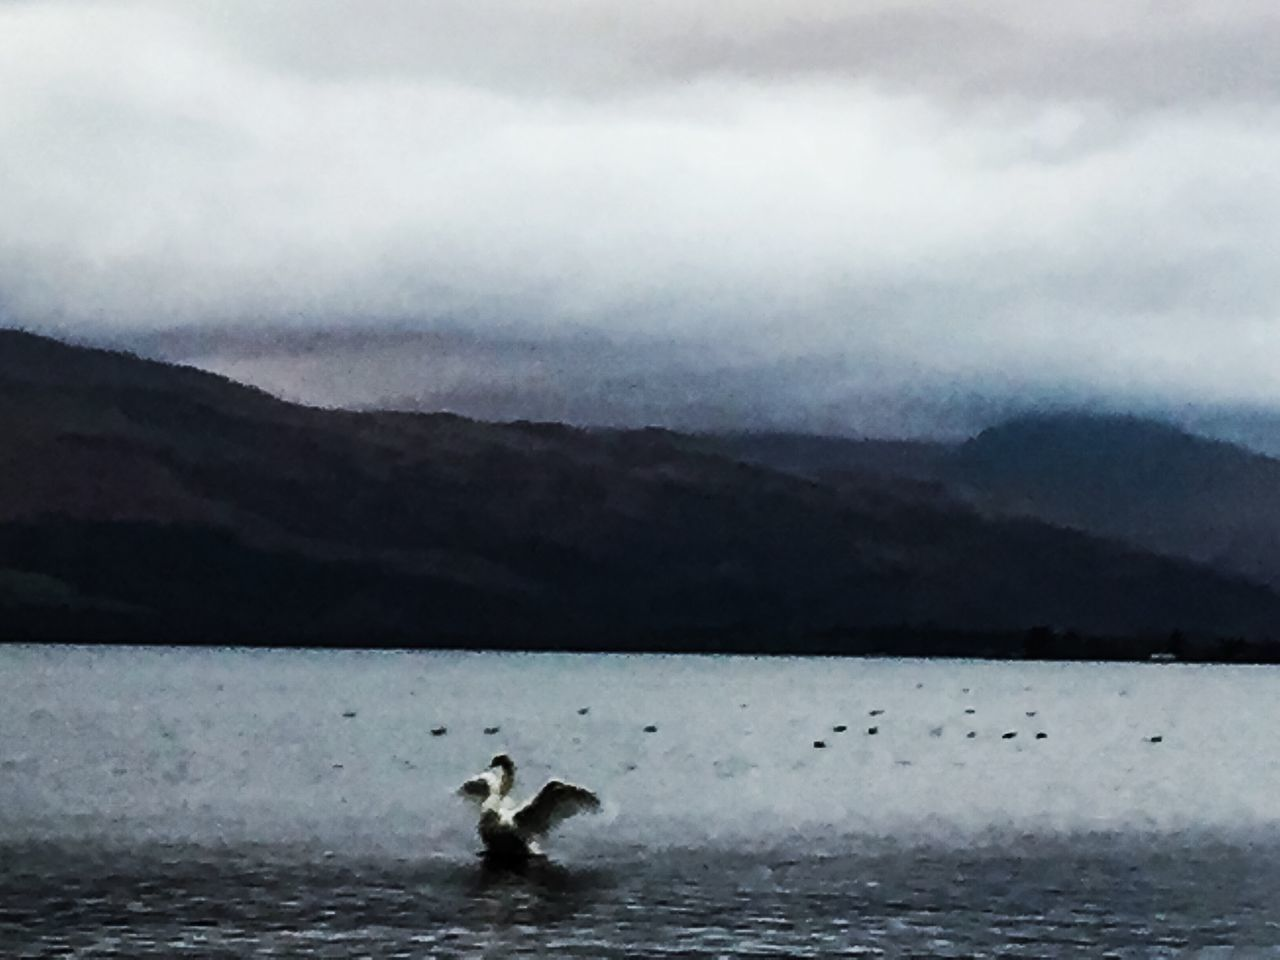 Today In Scotland Animal Bird Wildlife Water Waterfront LochLomond Sky Nature Tranquil Scene Swan Mountain Range Cloud - Sky Dramatic Edit Outdoors Day No People